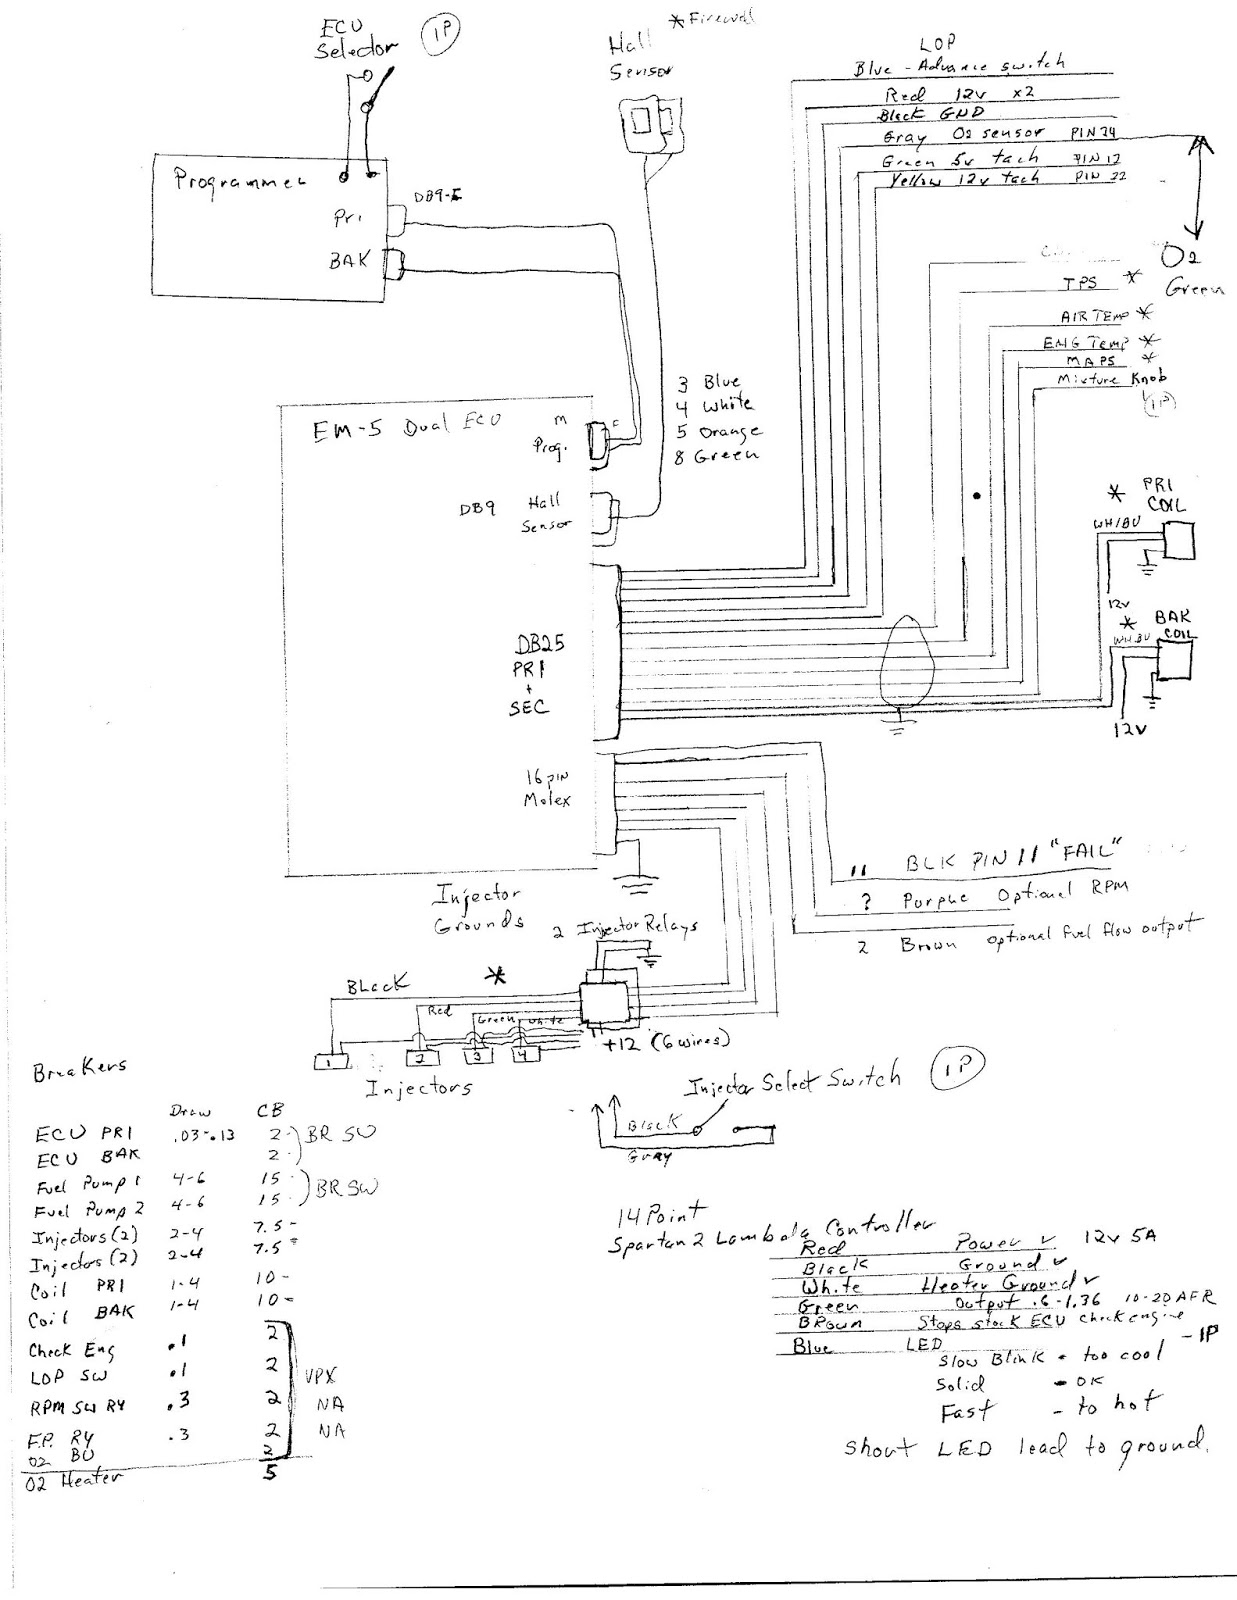 sds wiring diagram wiring diagram 16 parts of sds sds wiring diagram #3